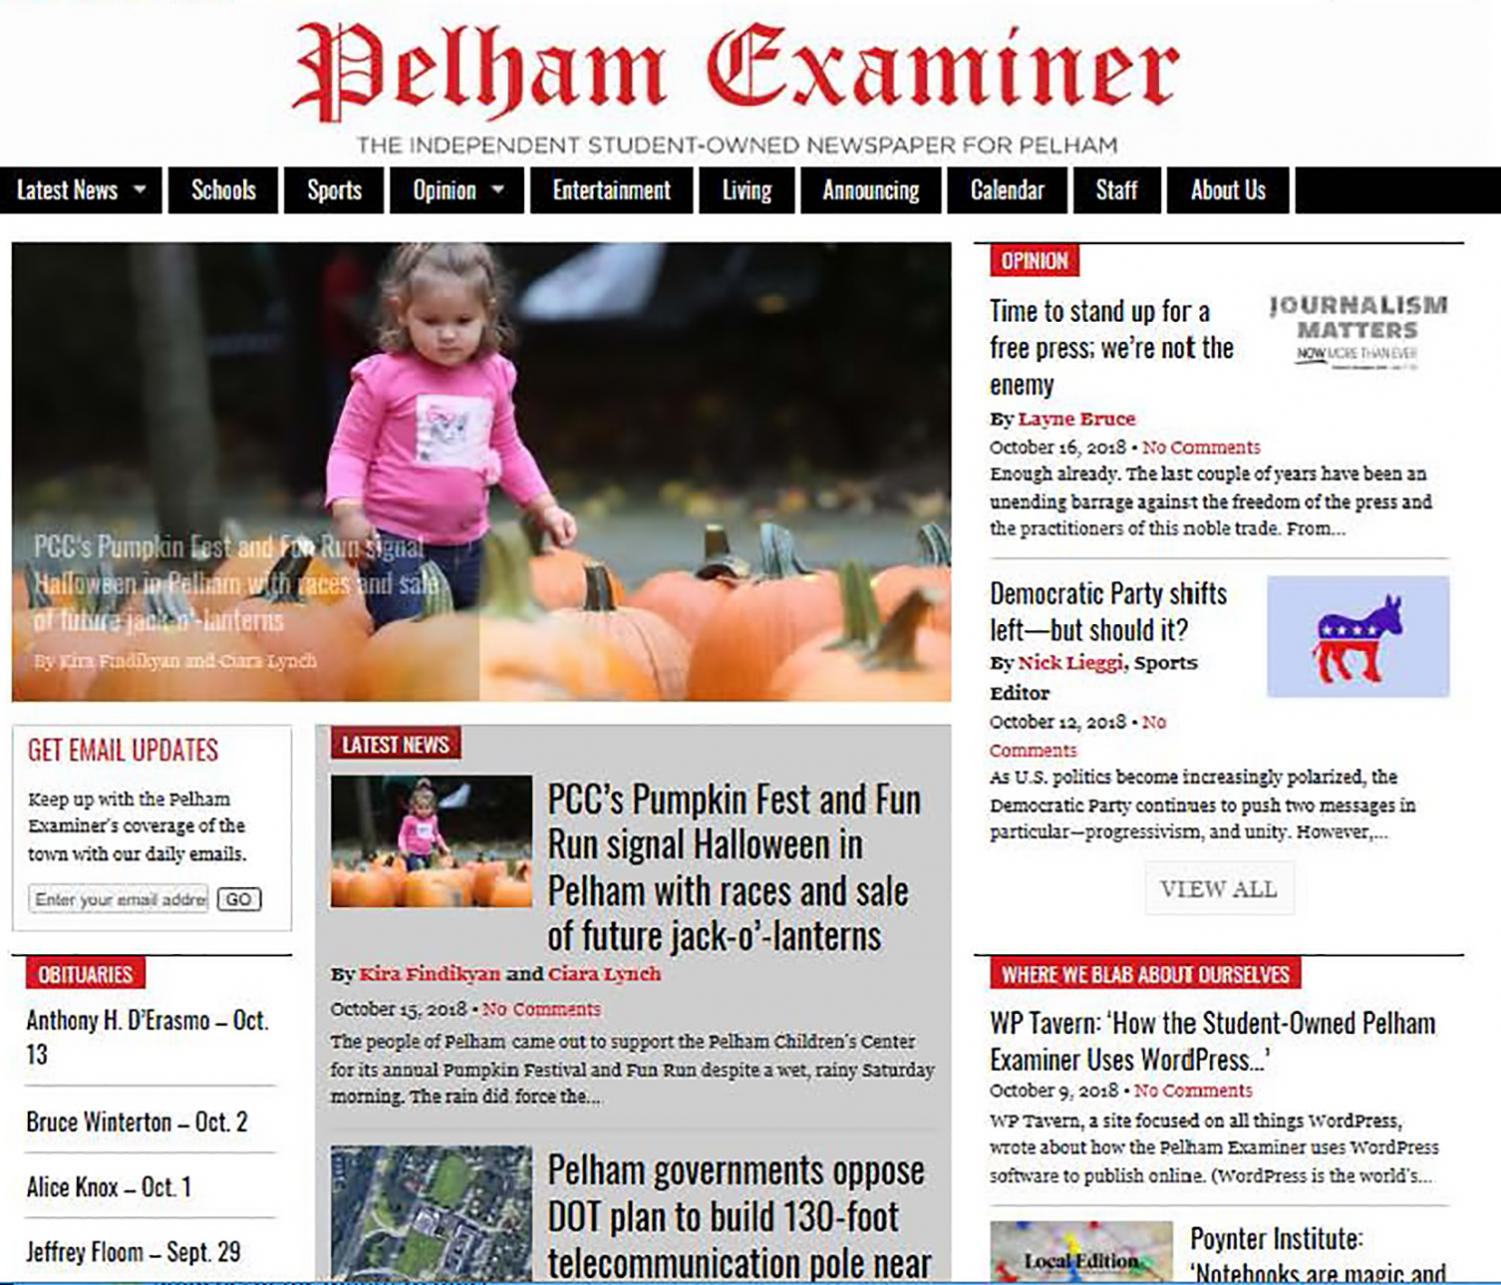 The all-student run Pelham Examiner updates its site with news daily.